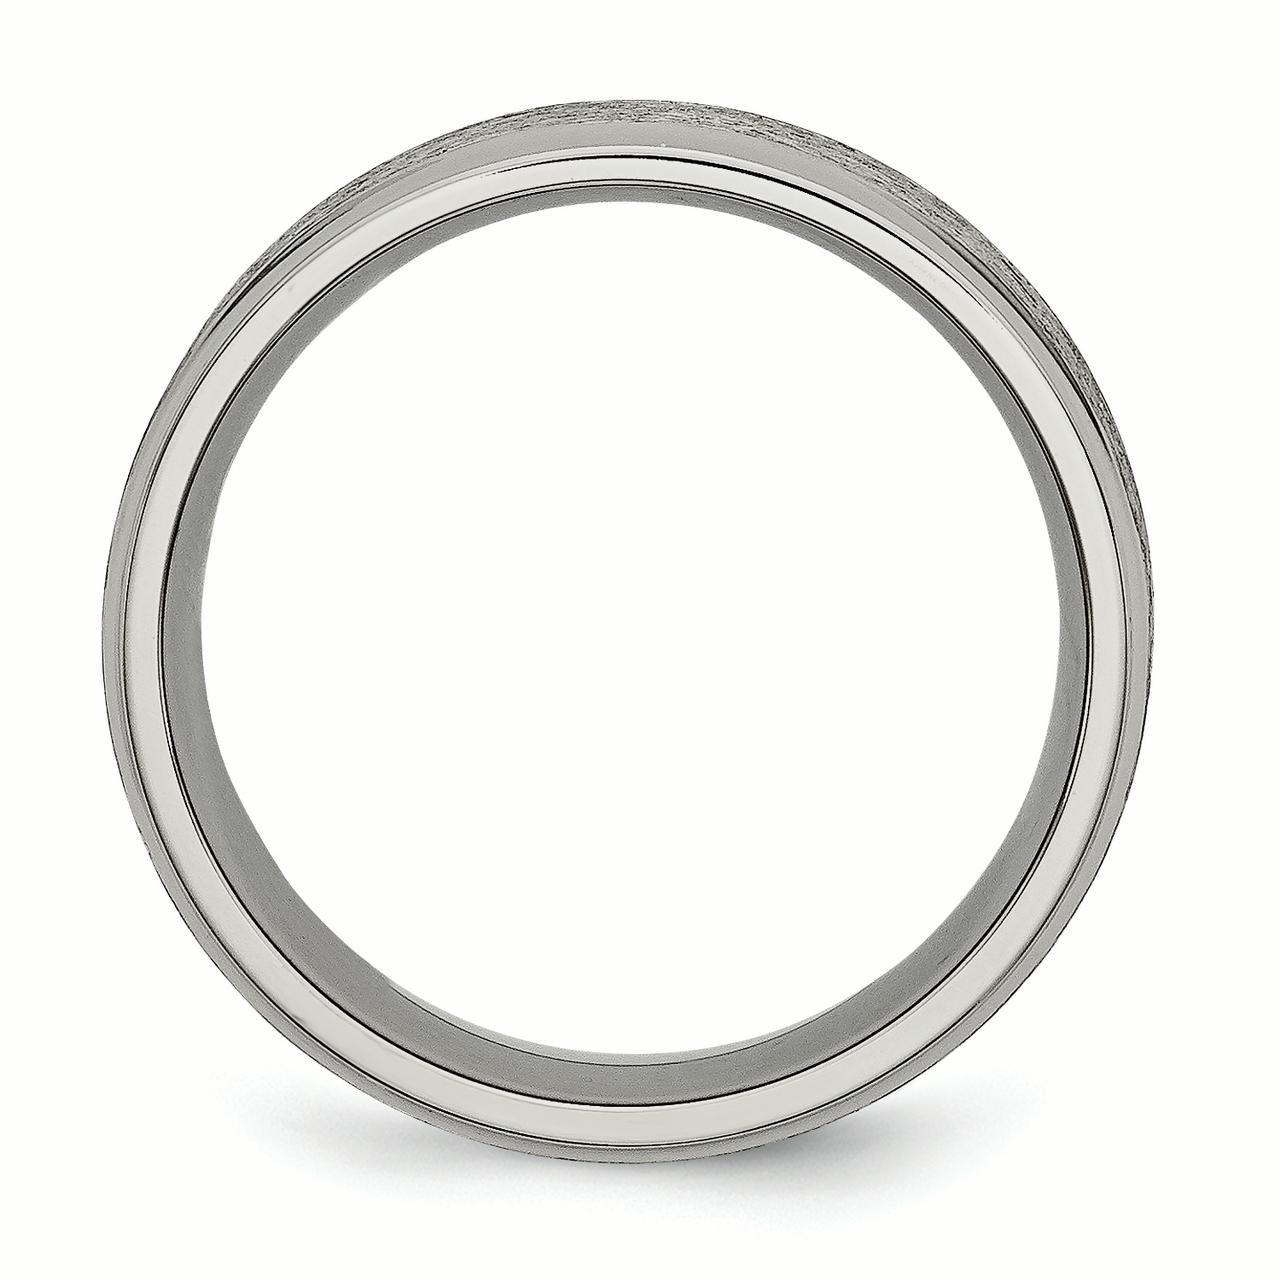 Titanium Ridged Edge 8mm Brushed Wedding Ring Band Size 11.00 Classic Flat W/edge Fashion Jewelry Gifts For Women For Her - image 3 of 6